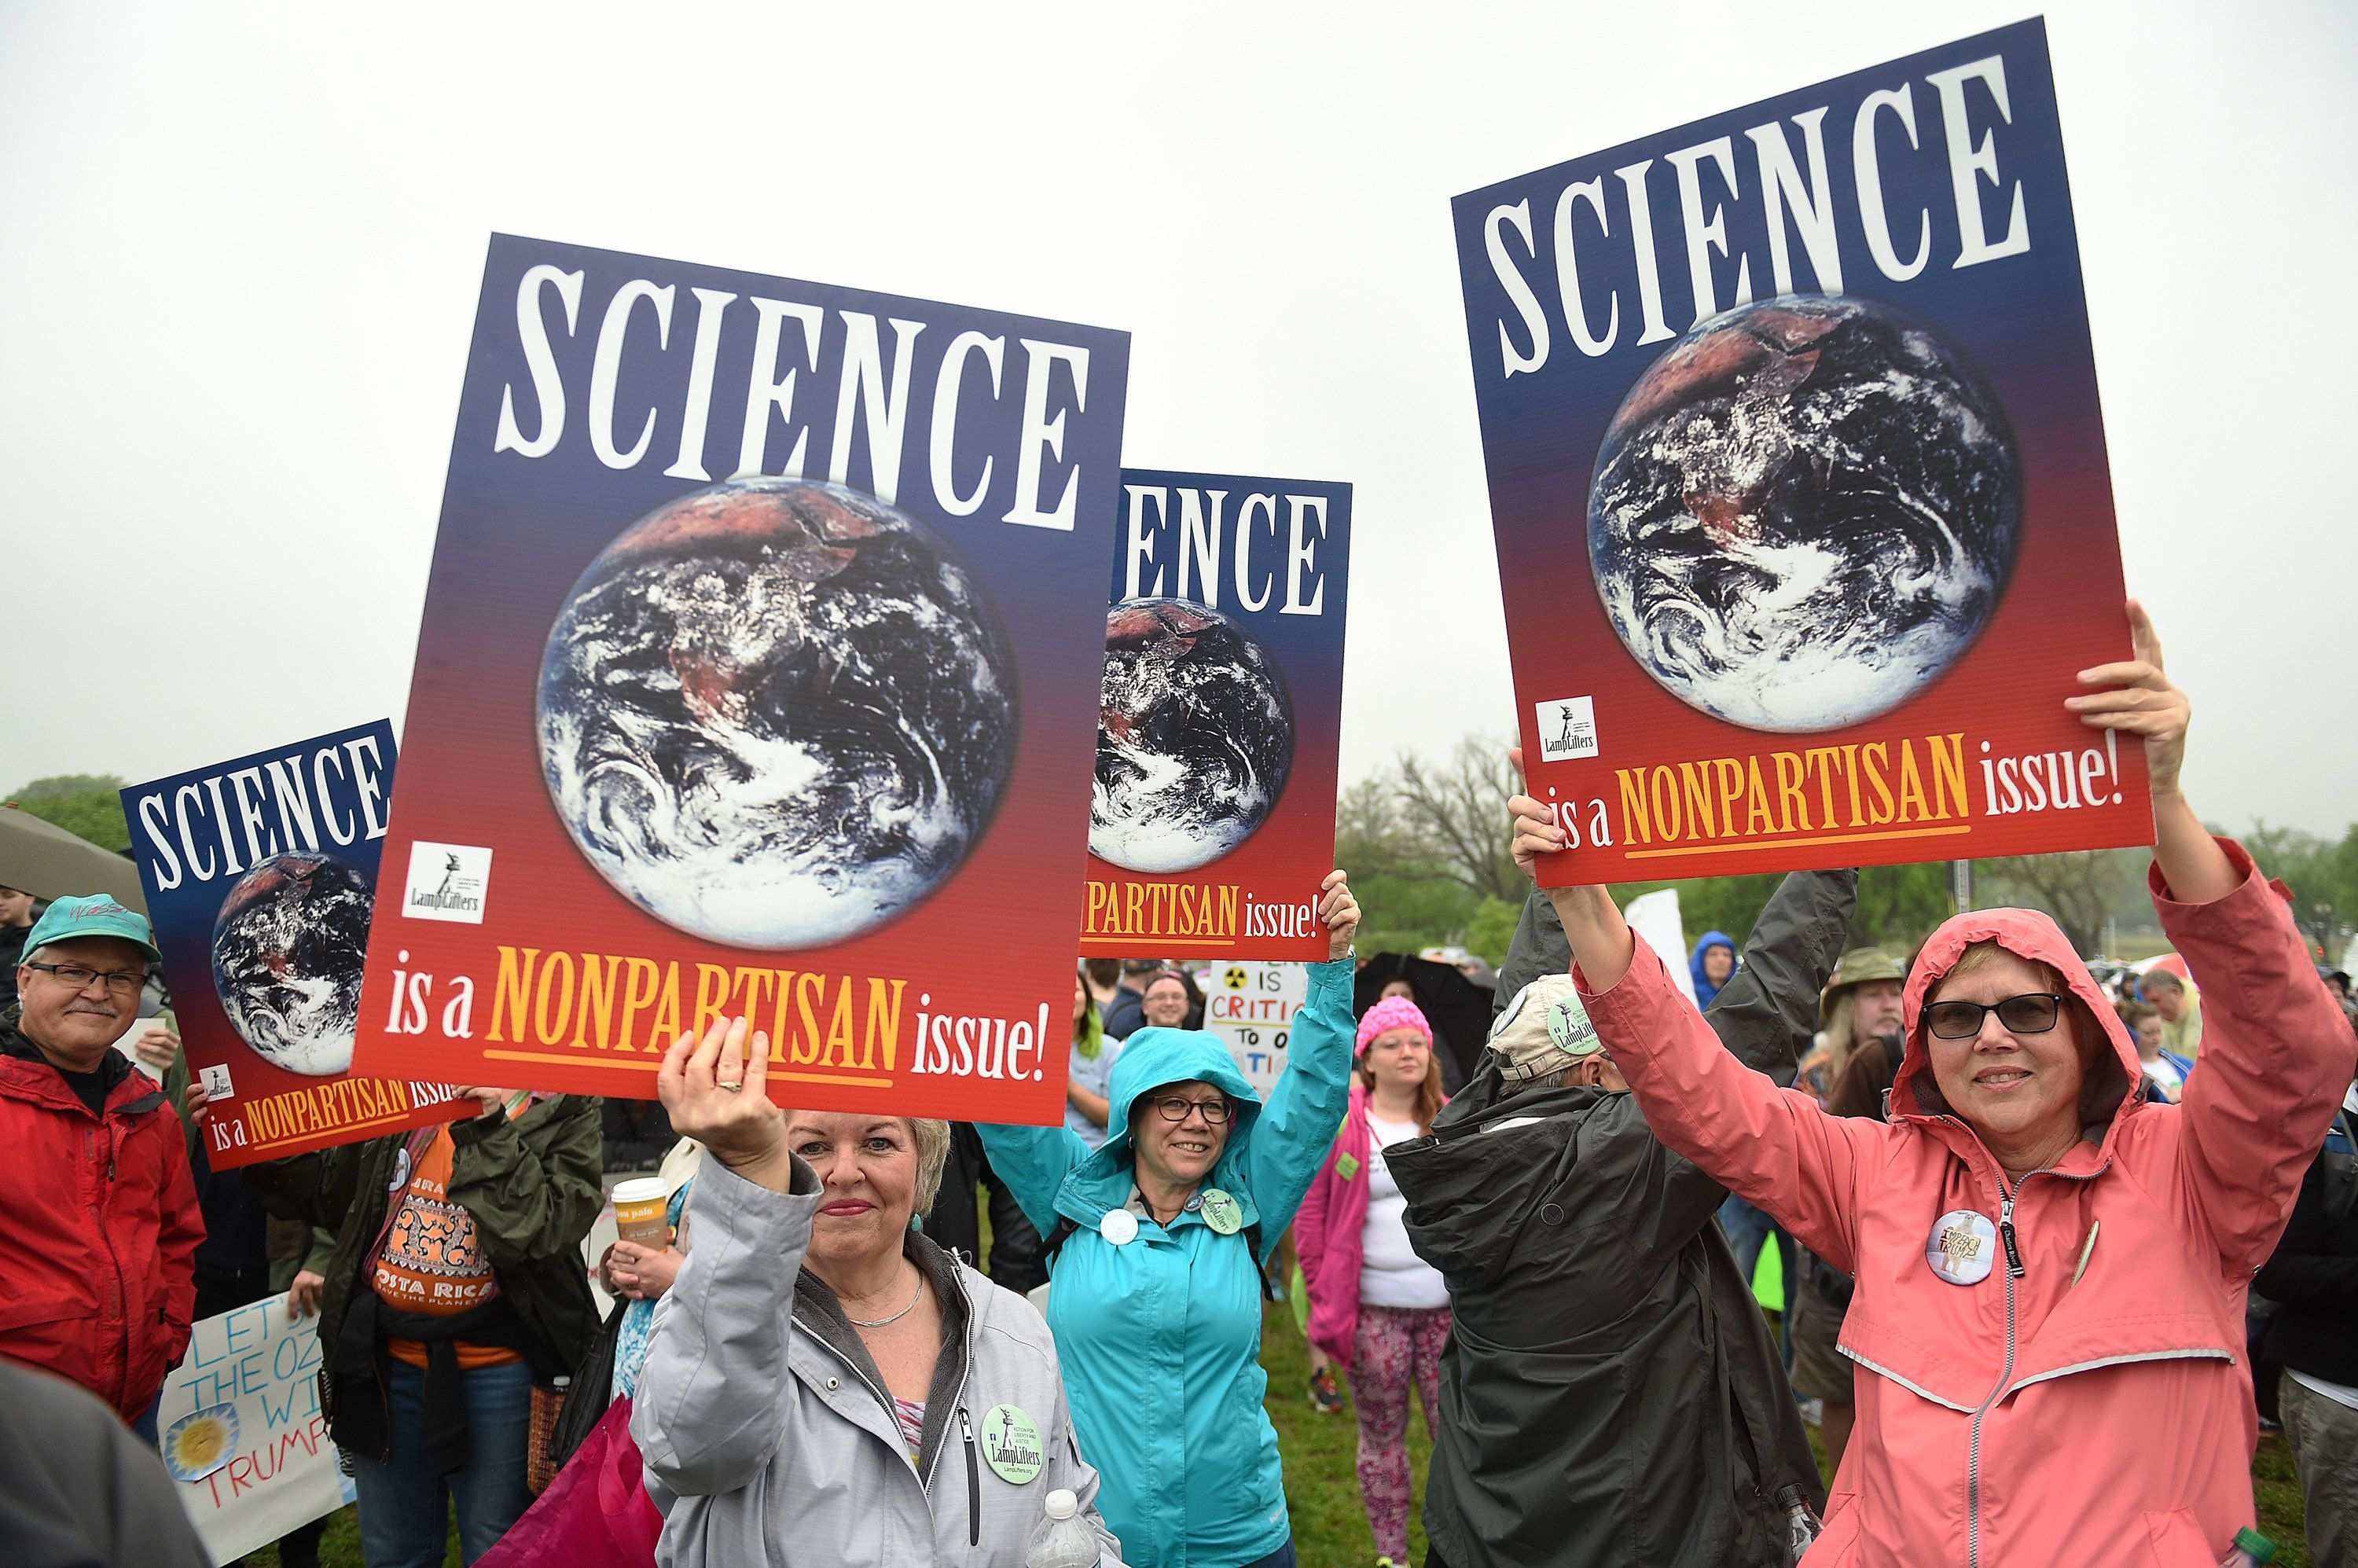 WASHINGTON, DC - APRIL 22: Participants in the Science March on Washington gather at the Washington Memorial before marching to the US Capitol in Washington, D.C, April 22, 2017.  Demonstrators focused their protest on President Trump's anti-science agenda and the dismantling of the Environmental Protection Agency. (Photo by Astrid Riecken For The Washington Post via Getty Images)